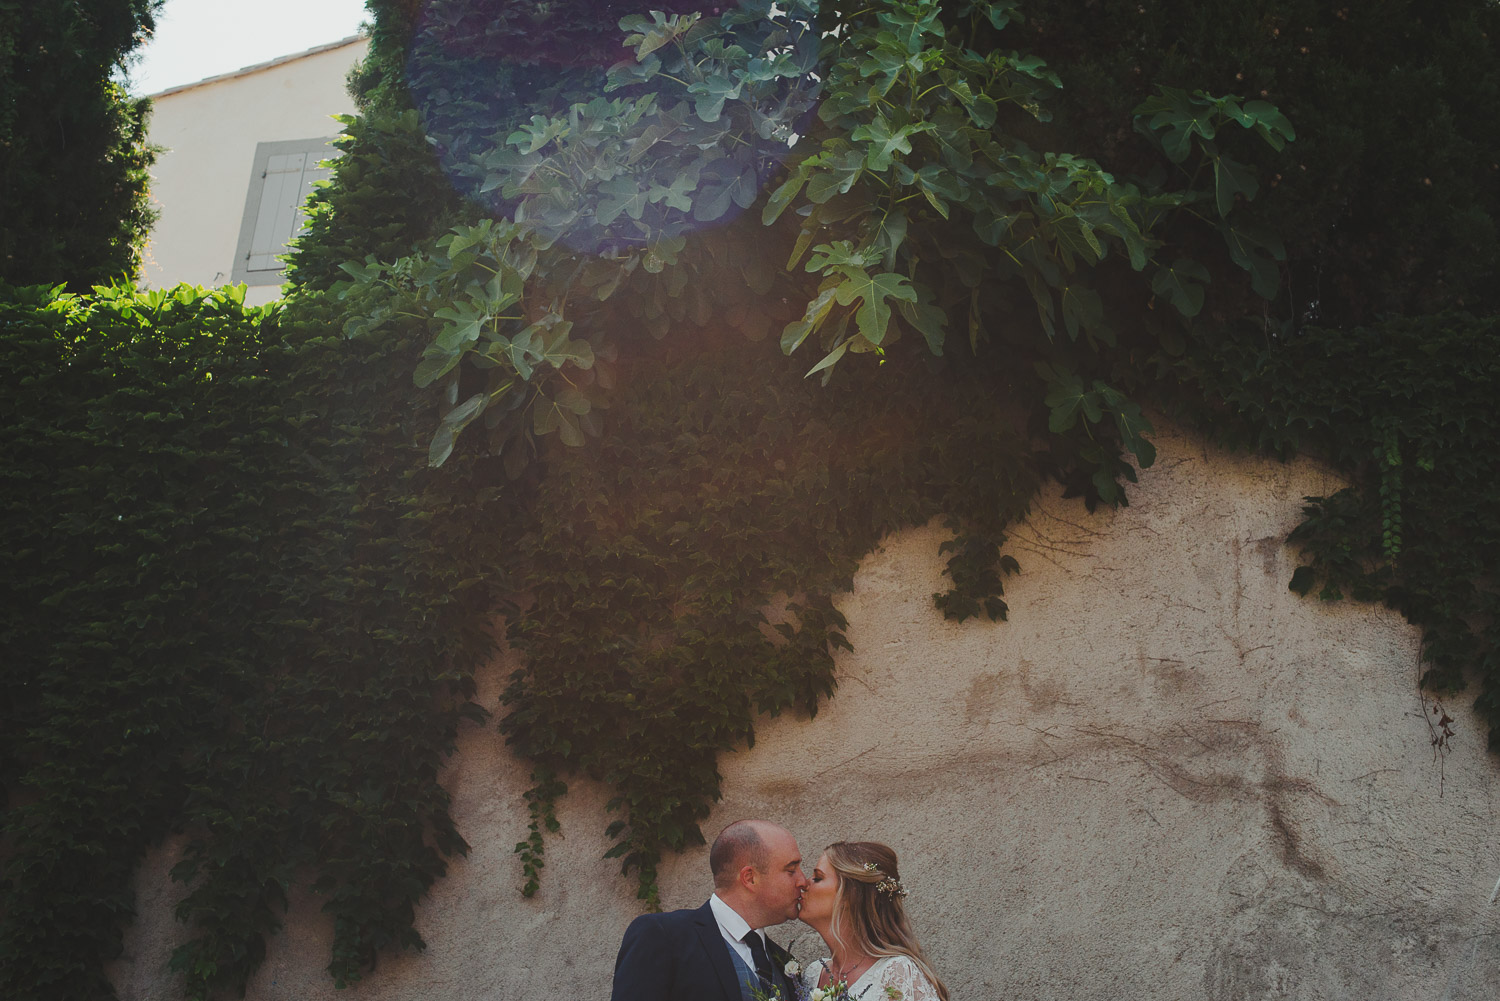 chateau_canet_carcassonne_wedding_katy_webb_photography_france_UK131